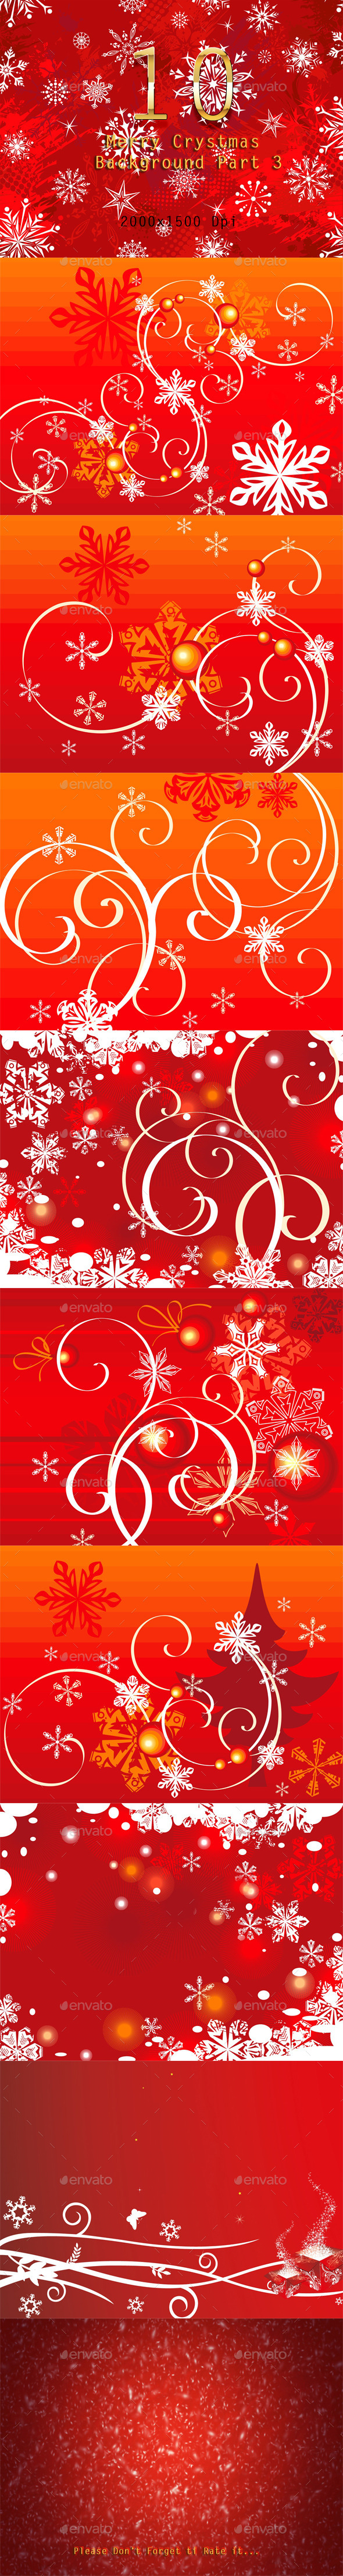 10 Merry Christmas Background Part 3 - Backgrounds Graphics